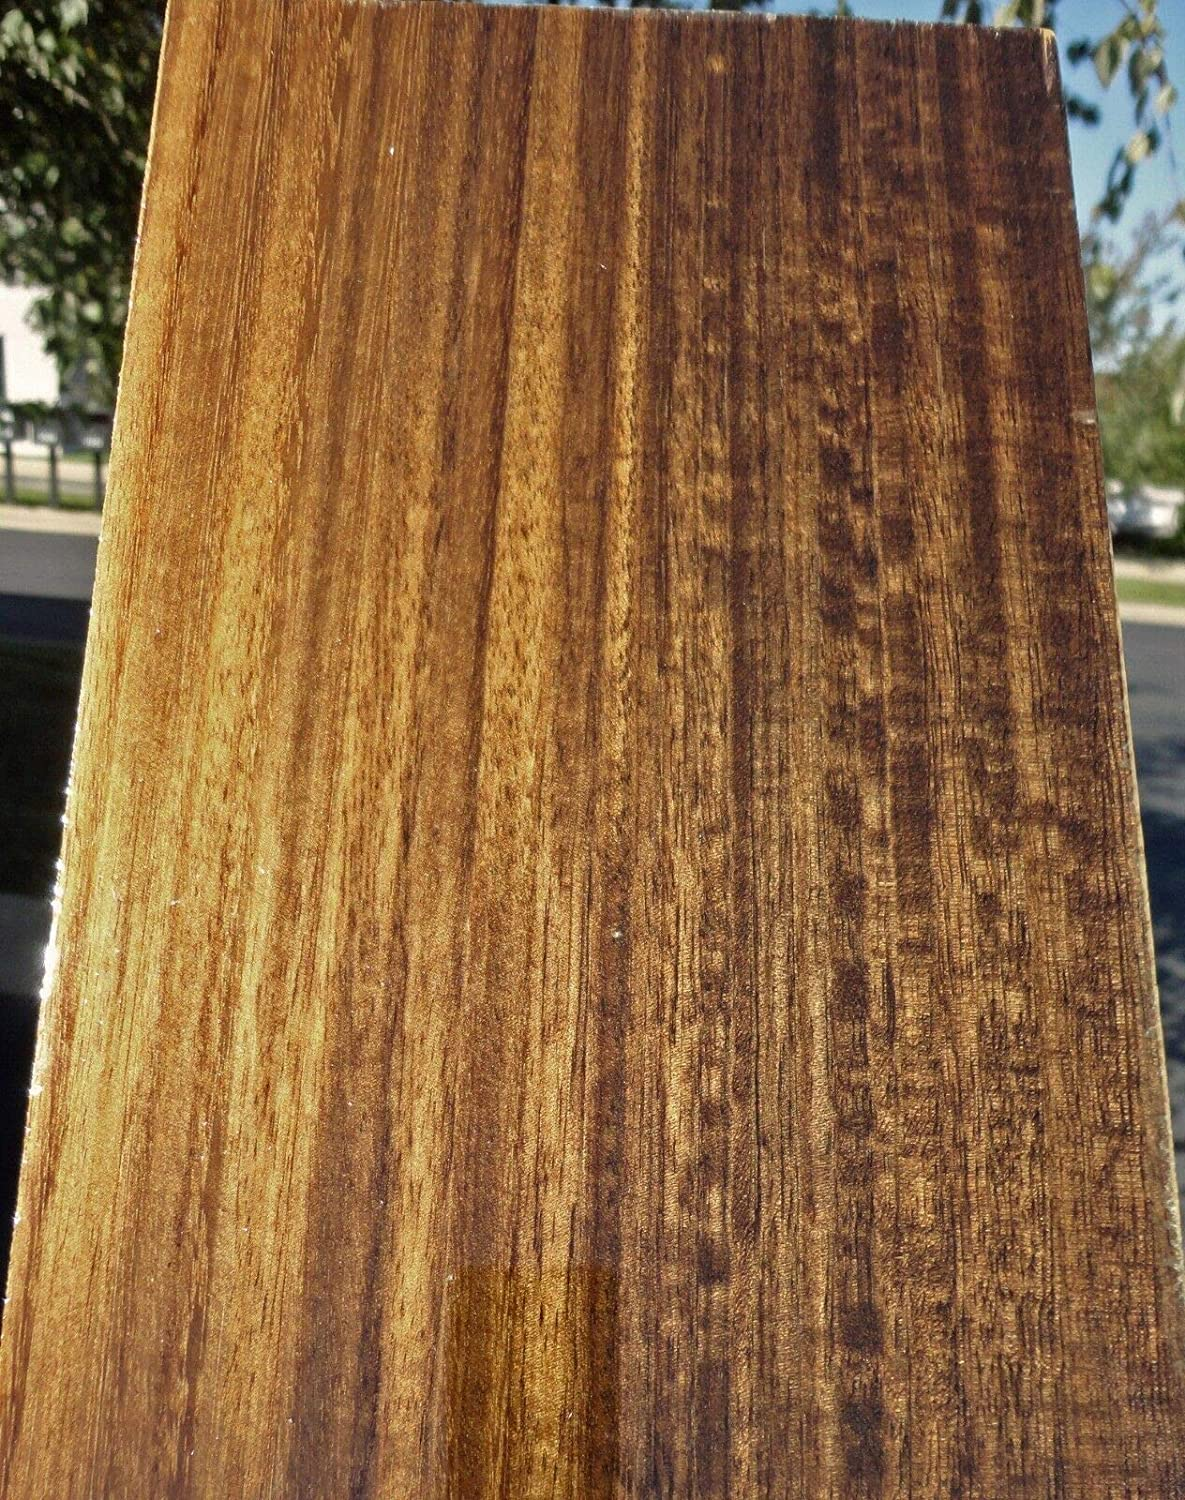 Smoked Fumed Eucalyptus Wood Veneer 6 5 X 30 Raw No